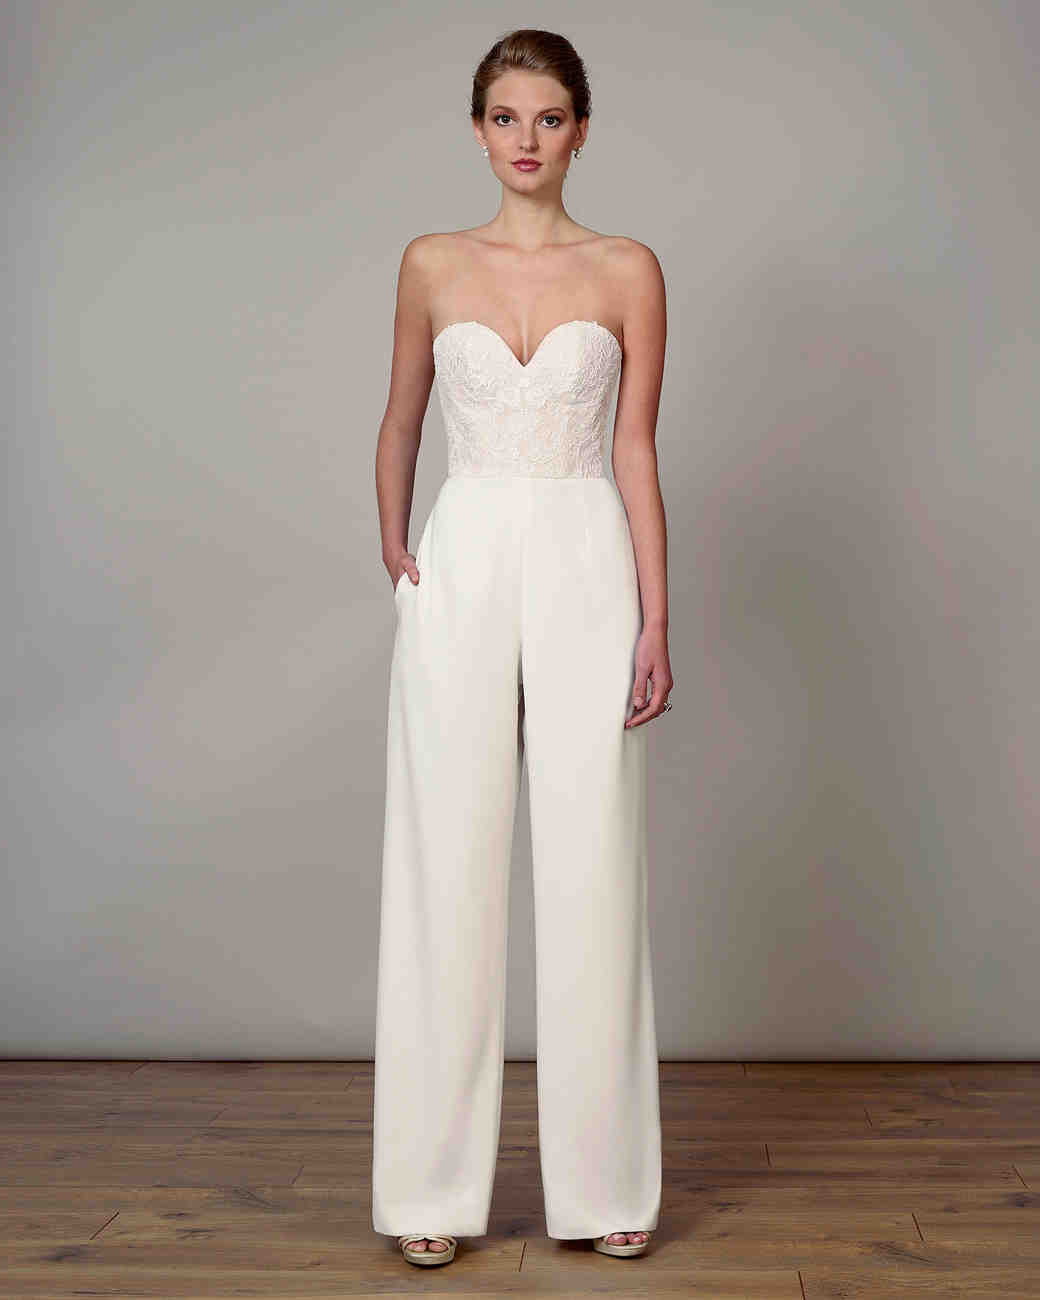 63 Chic Wedding Suits For Brides Martha Stewart Weddings